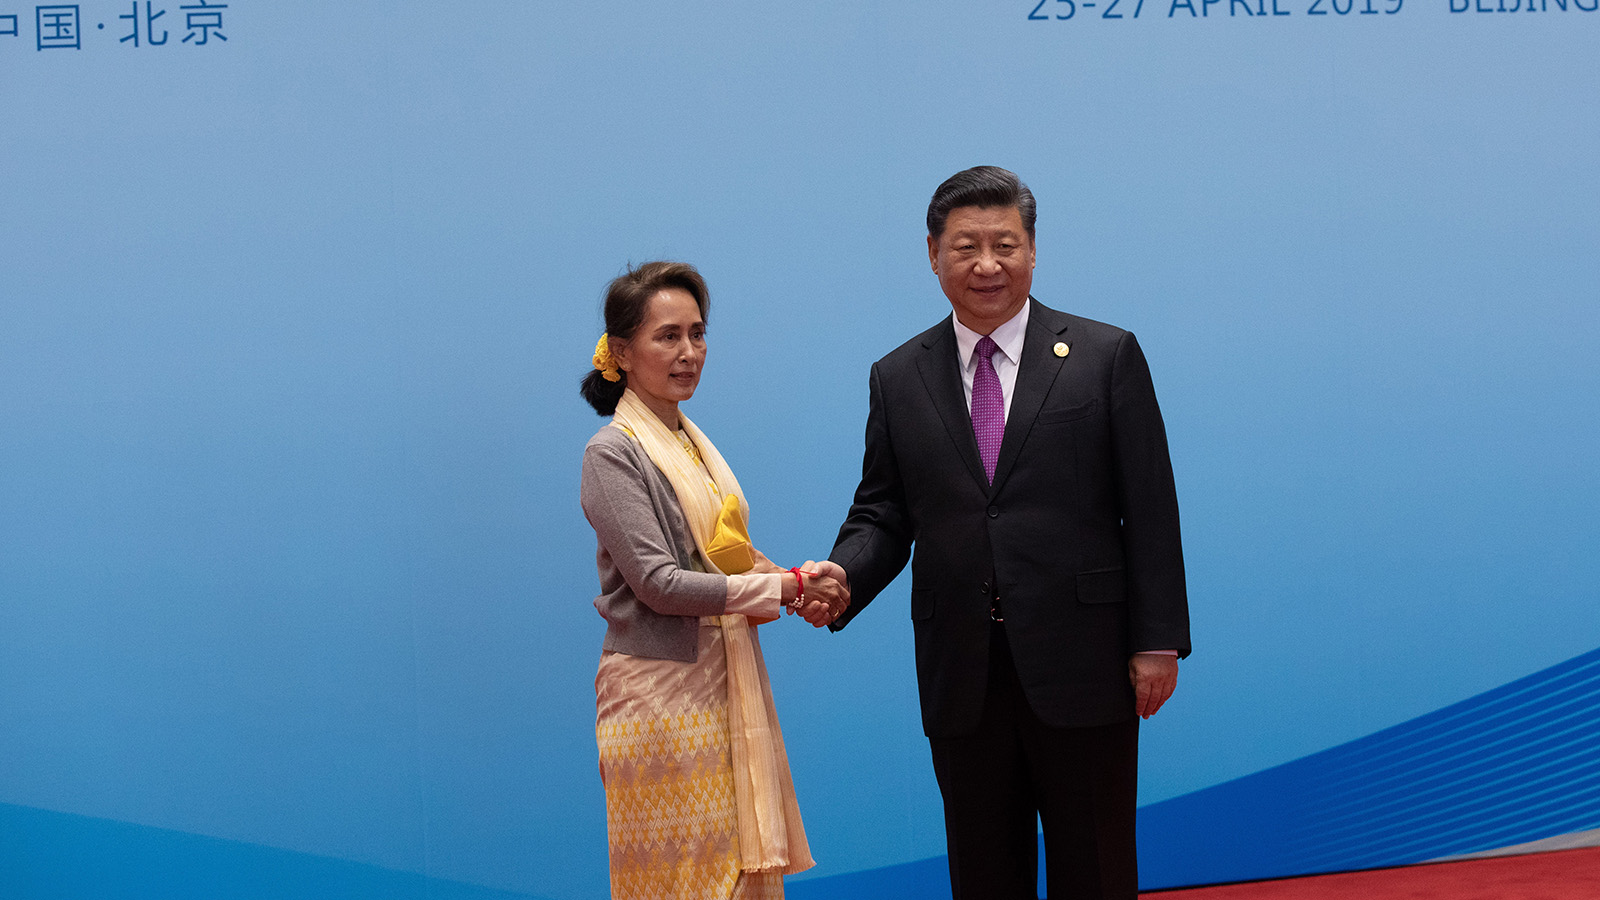 State Counsellor Daw Aung San Suu Kyi welcomed by Chinese President Xi Jinjping. PHOTO : MNA